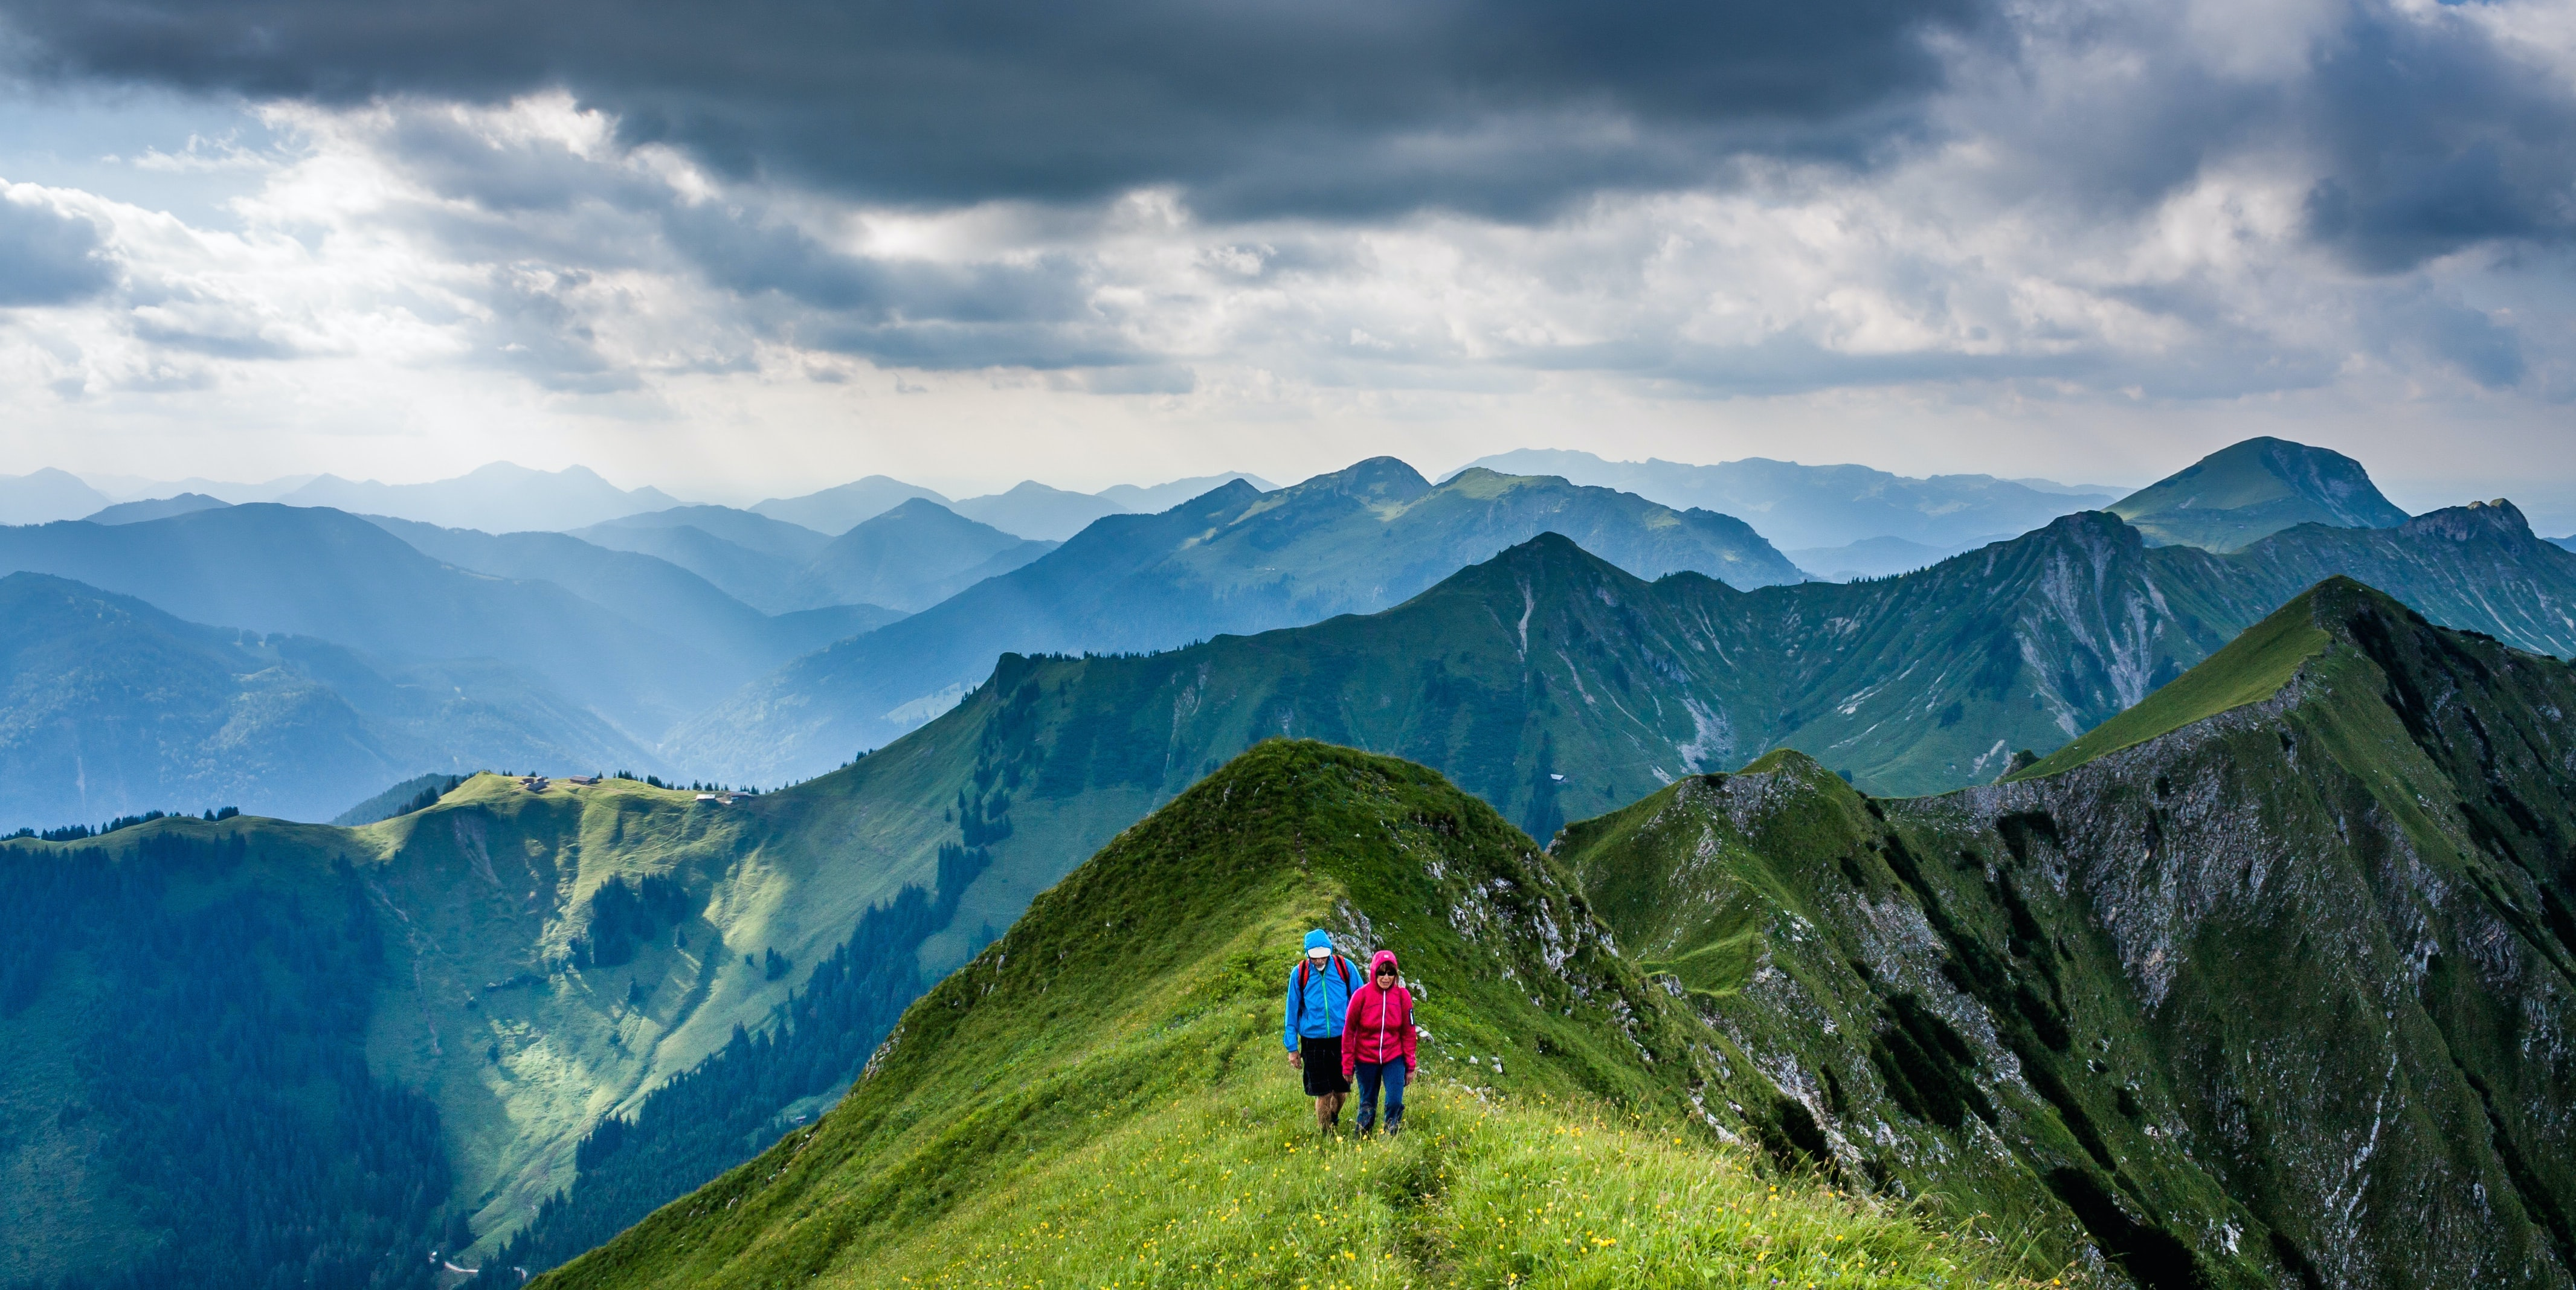 Two hikers walking on a grassy mountain ridge